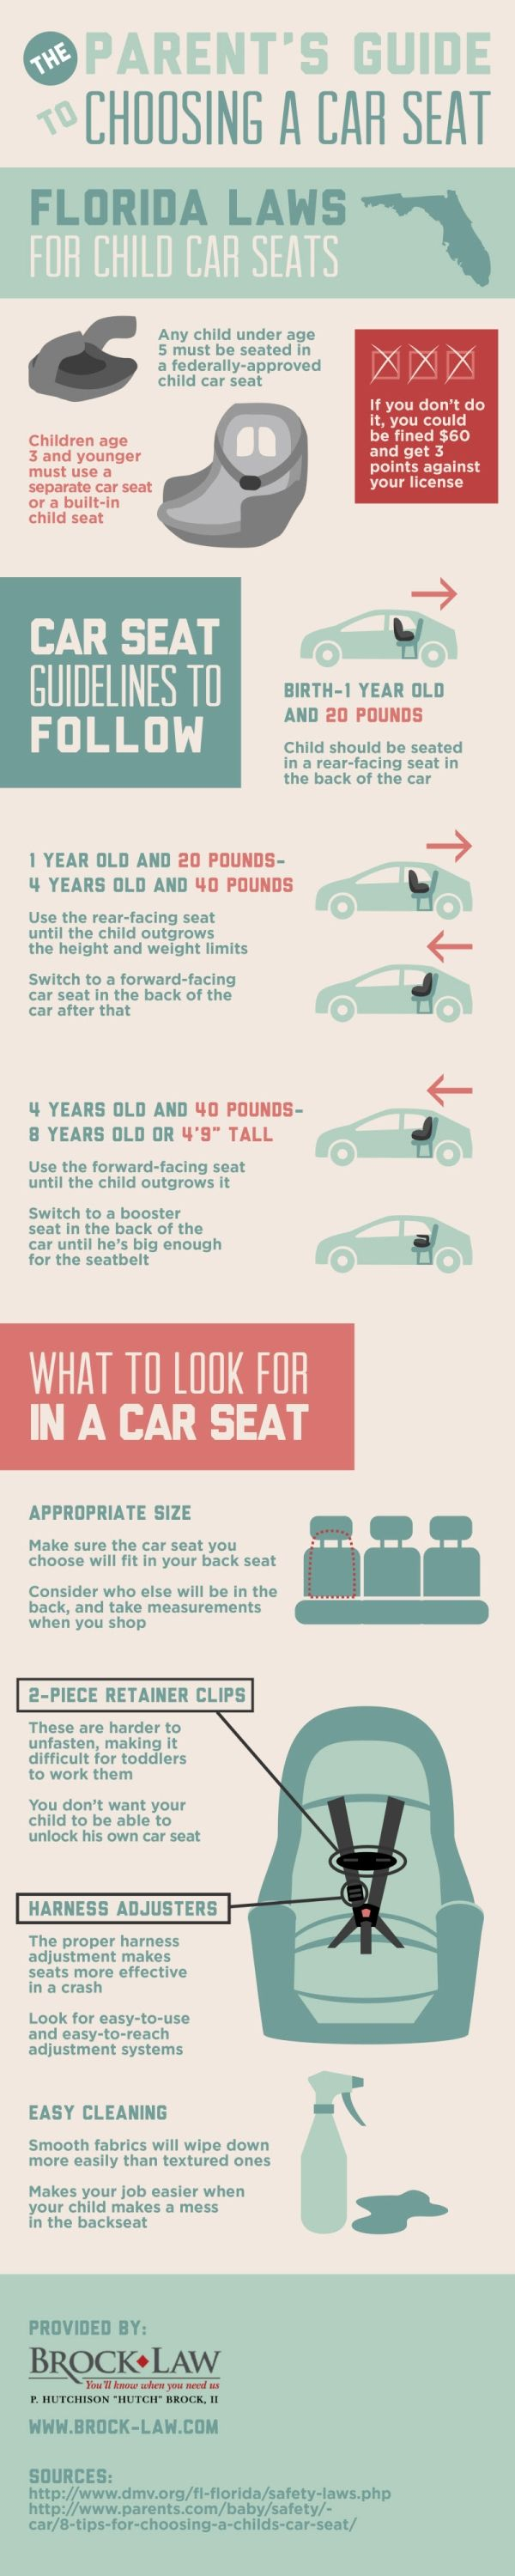 Florida car seat laws - In The State Of Florida Children Age 3 And Younger Must Use A Separate Car Seat Or A Built In Child Seat Take A Look At This Infographic From A Personal